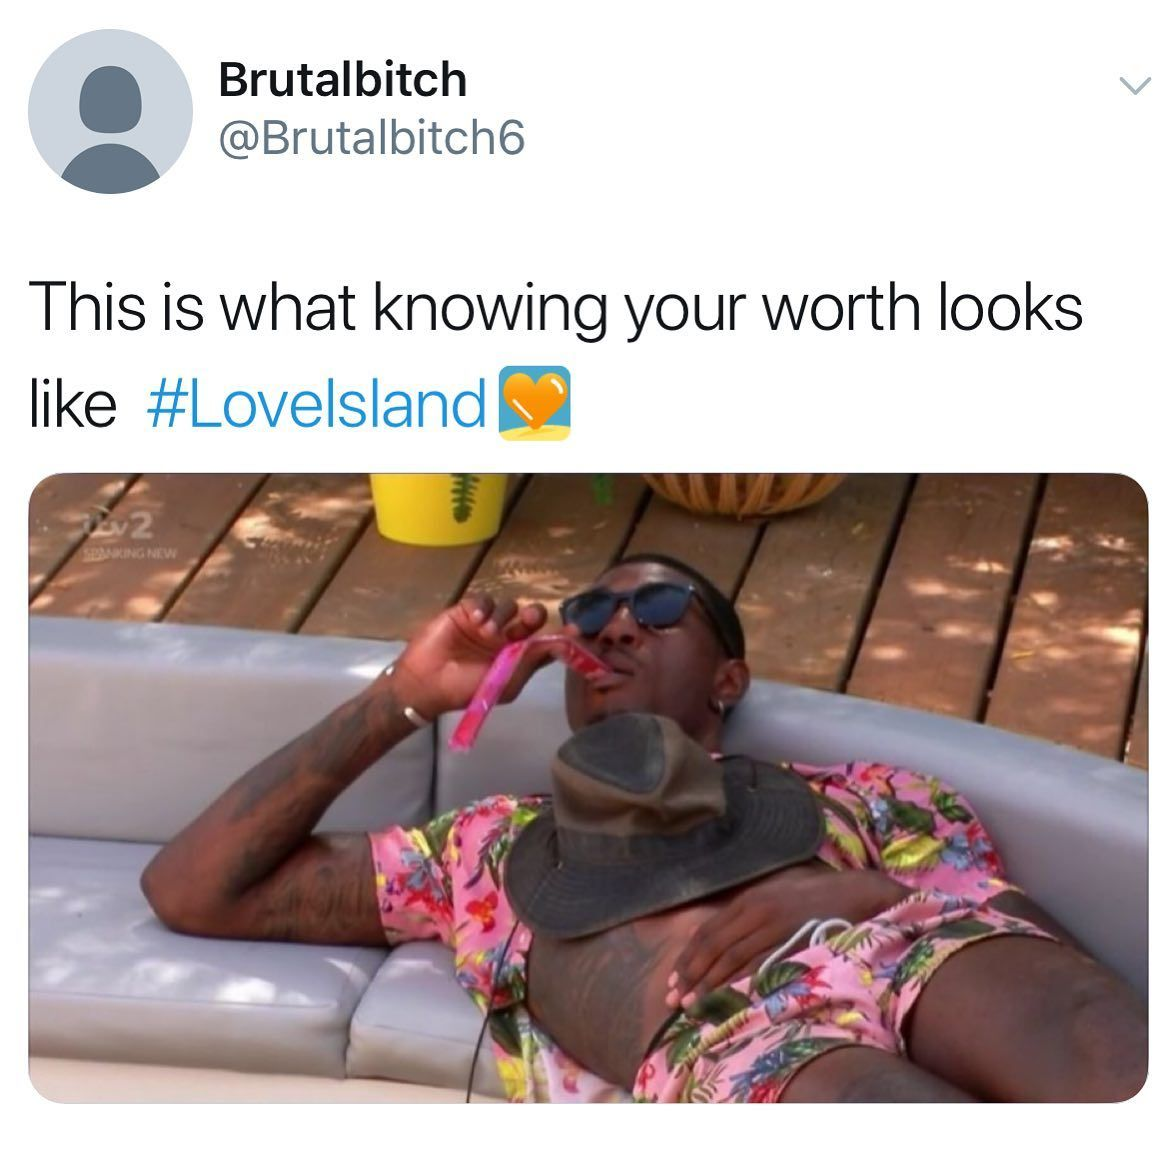 Image may contain: Love Island Ovie memes, Love Island, Ovie Soko, meme, reaction, twitter, funny, best, moment, ice lolly, shirt, hat, Skin, Human, Person, Accessory, Accessories, Sunglasses